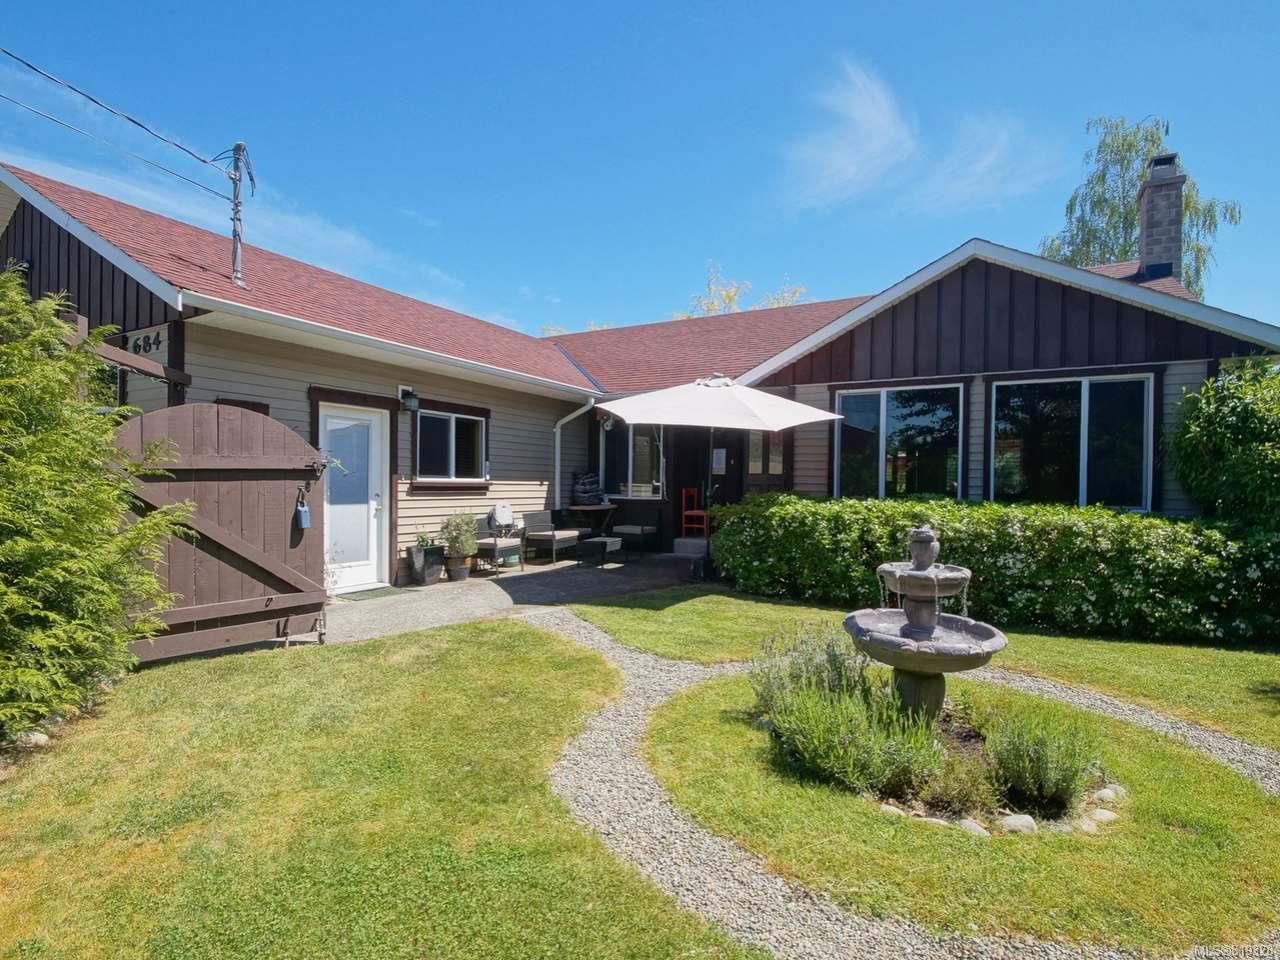 Main Photo: 684 PHILLIPS STREET in PARKSVILLE: PQ Parksville House for sale (Parksville/Qualicum)  : MLS®# 819328